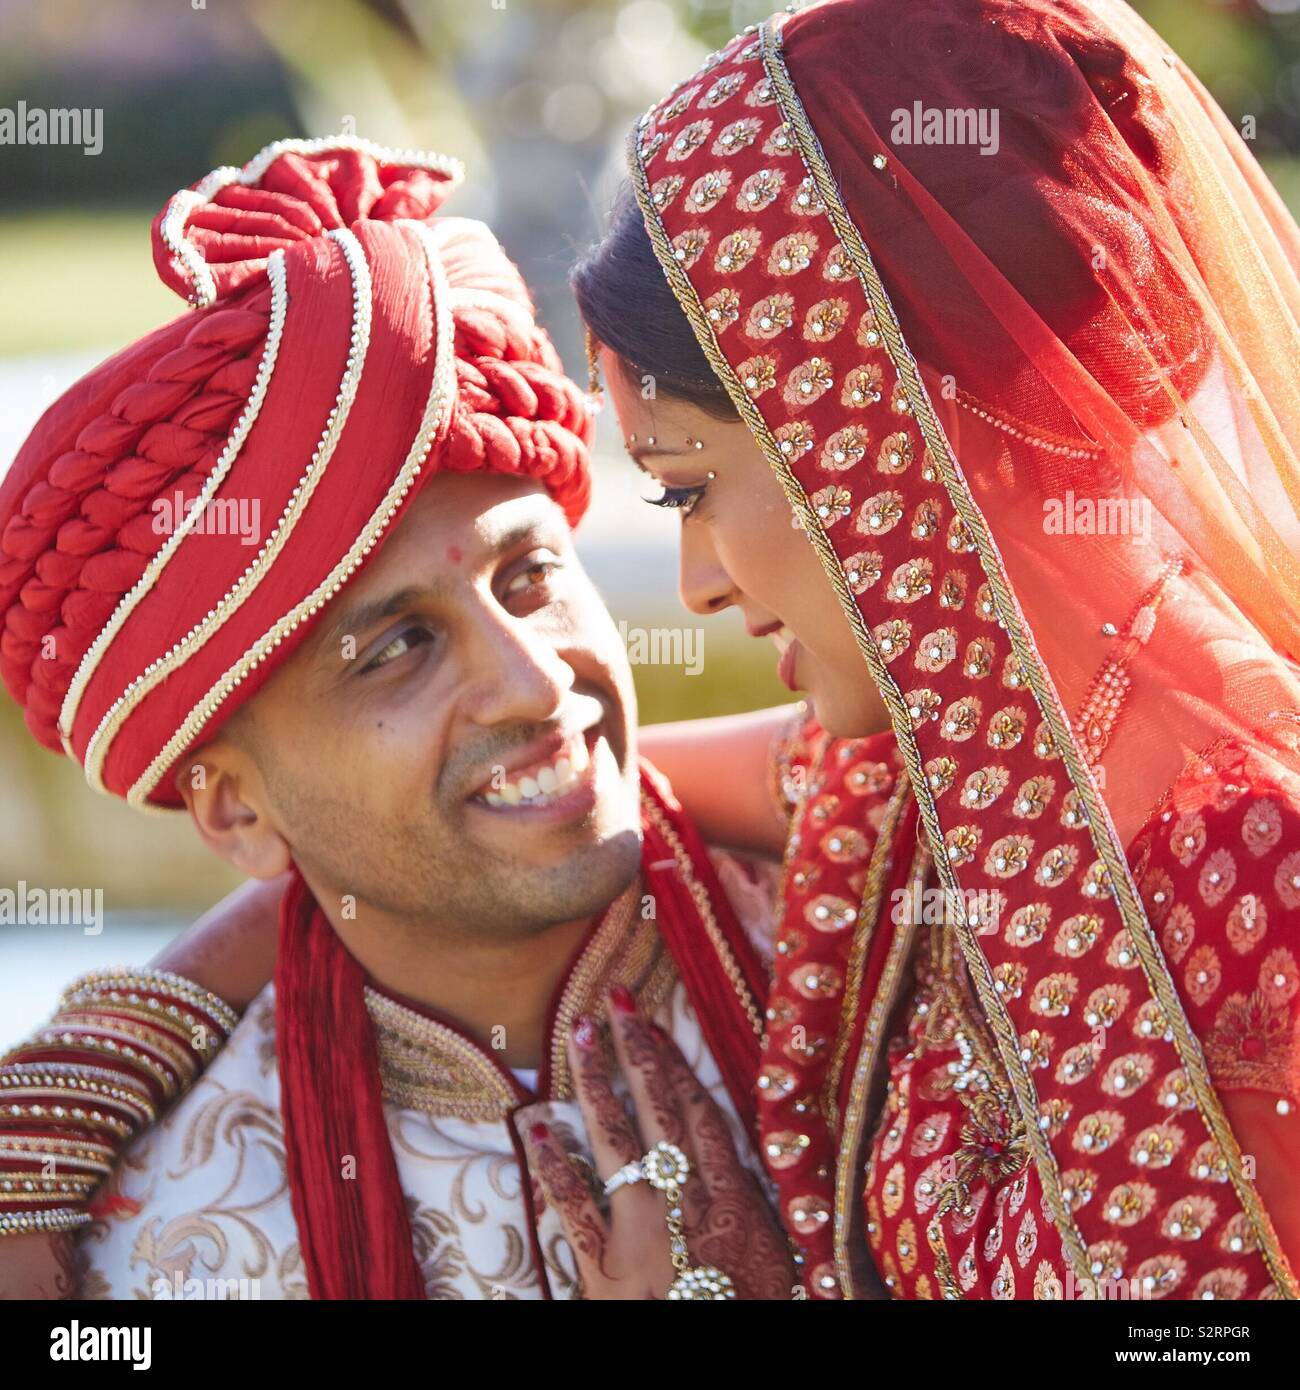 Indian Wedding Bride Groom Stock Photos & Indian Wedding